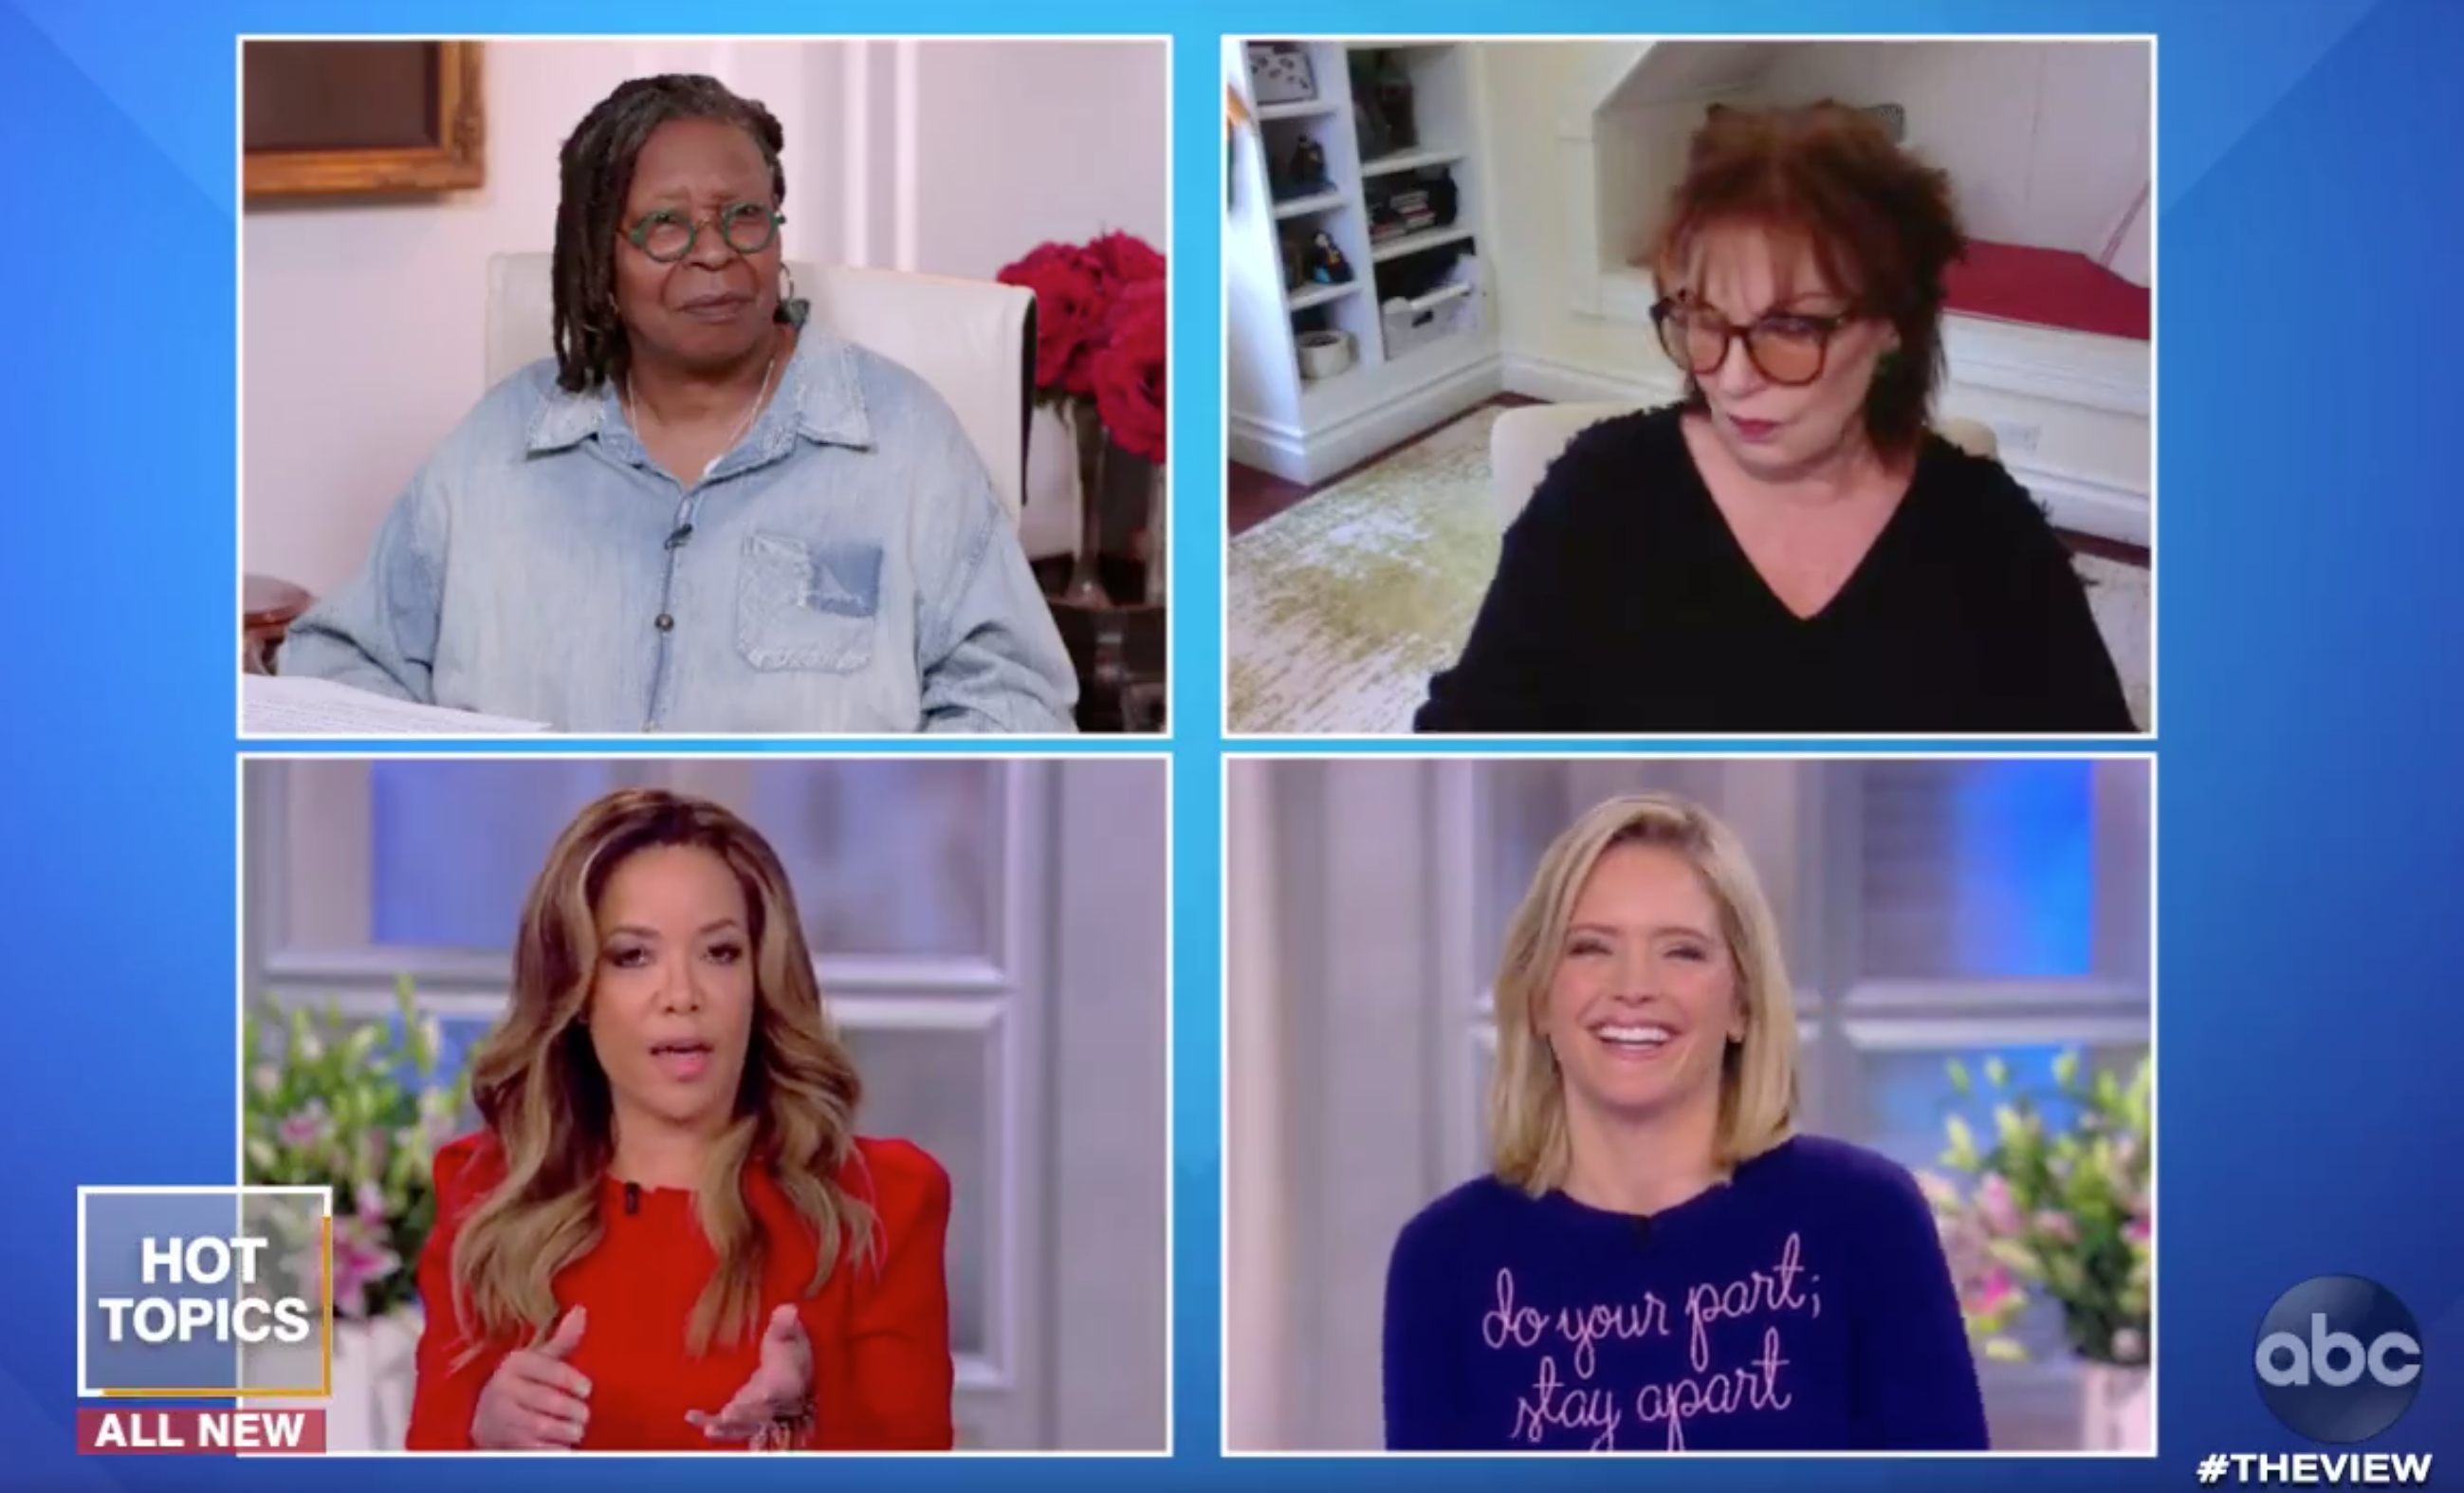 Clockwise from top left: Whoopi Goldberg, Joy Behar, Sarah Haines and Sunny Hostin on ABC's 'The View,' March 23, 2020